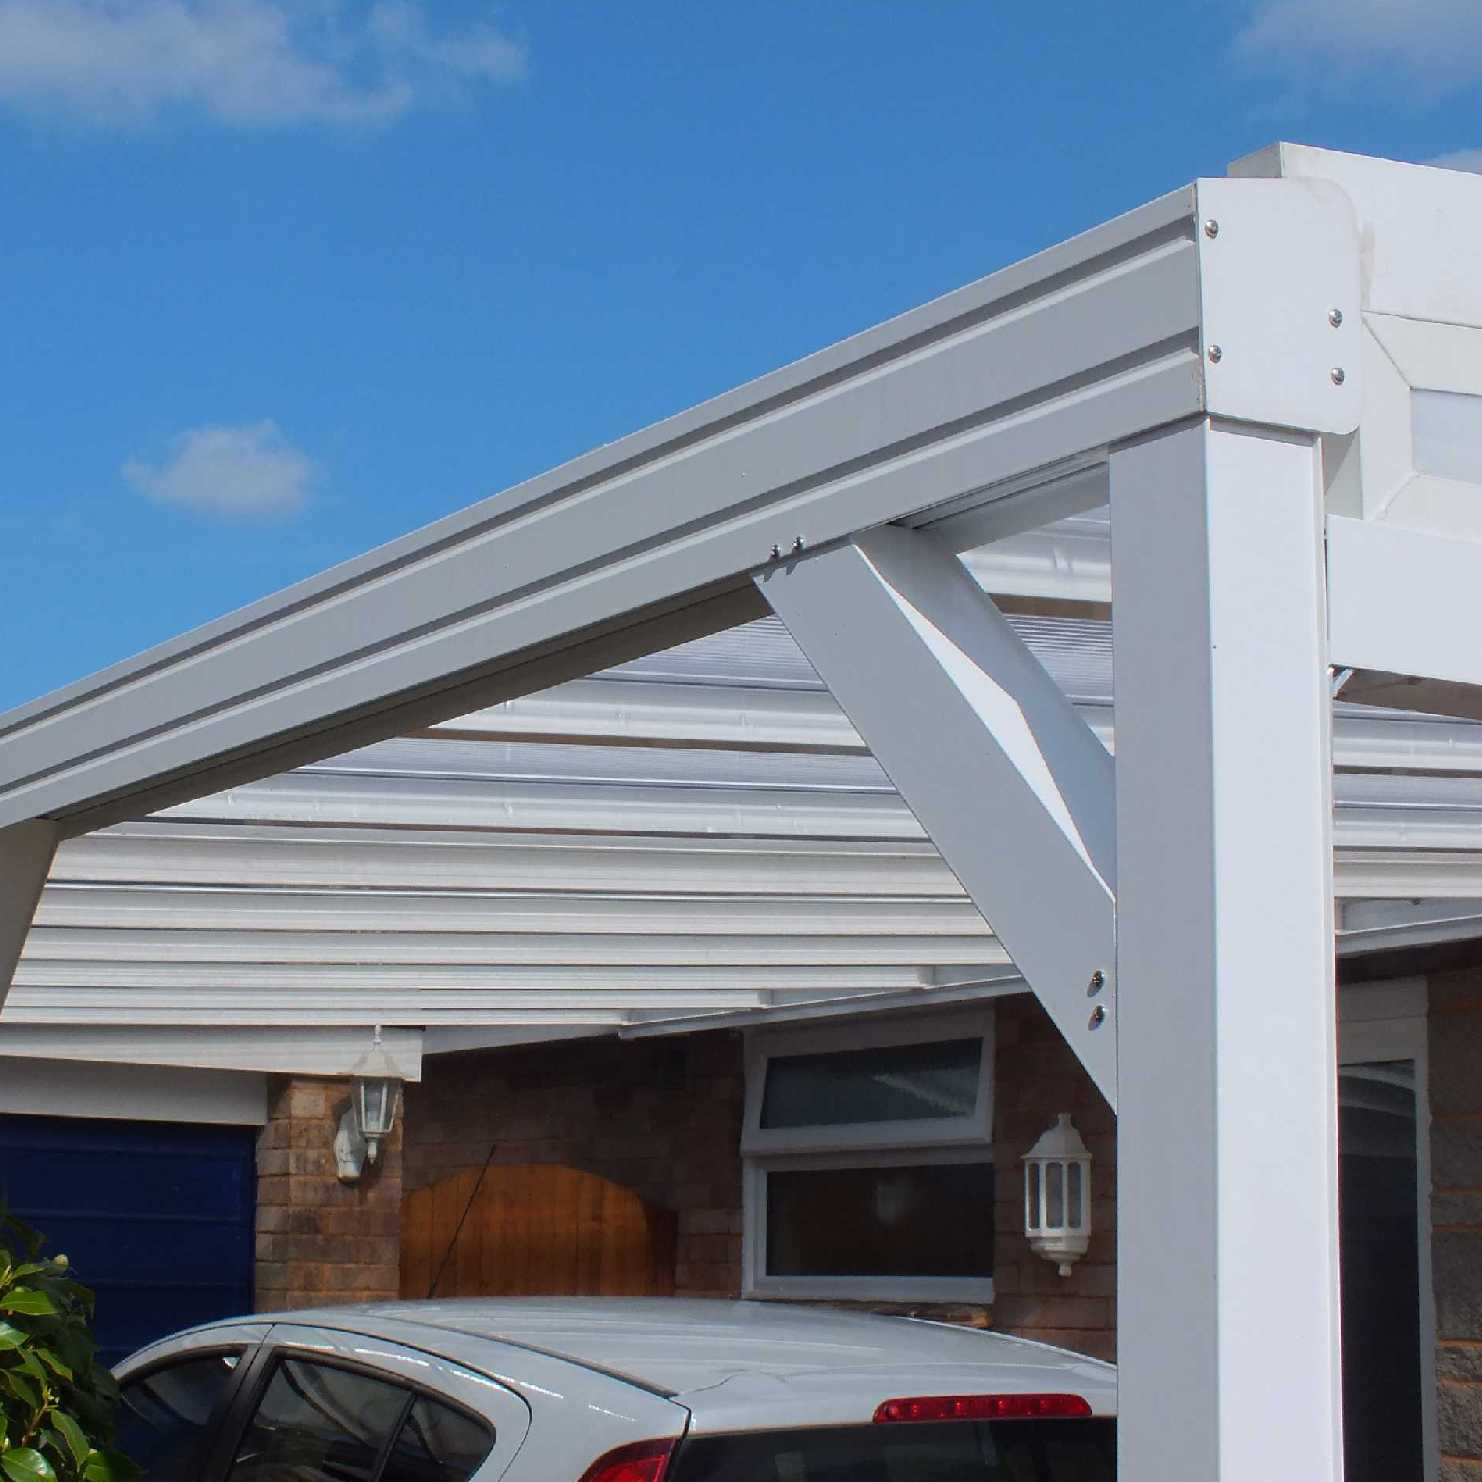 Buy Omega Smart White  Lean-To Canopy with 16mm Polycarbonate Glazing - 3.1m (W) x 1.5m (P), (2) Supporting Posts online today